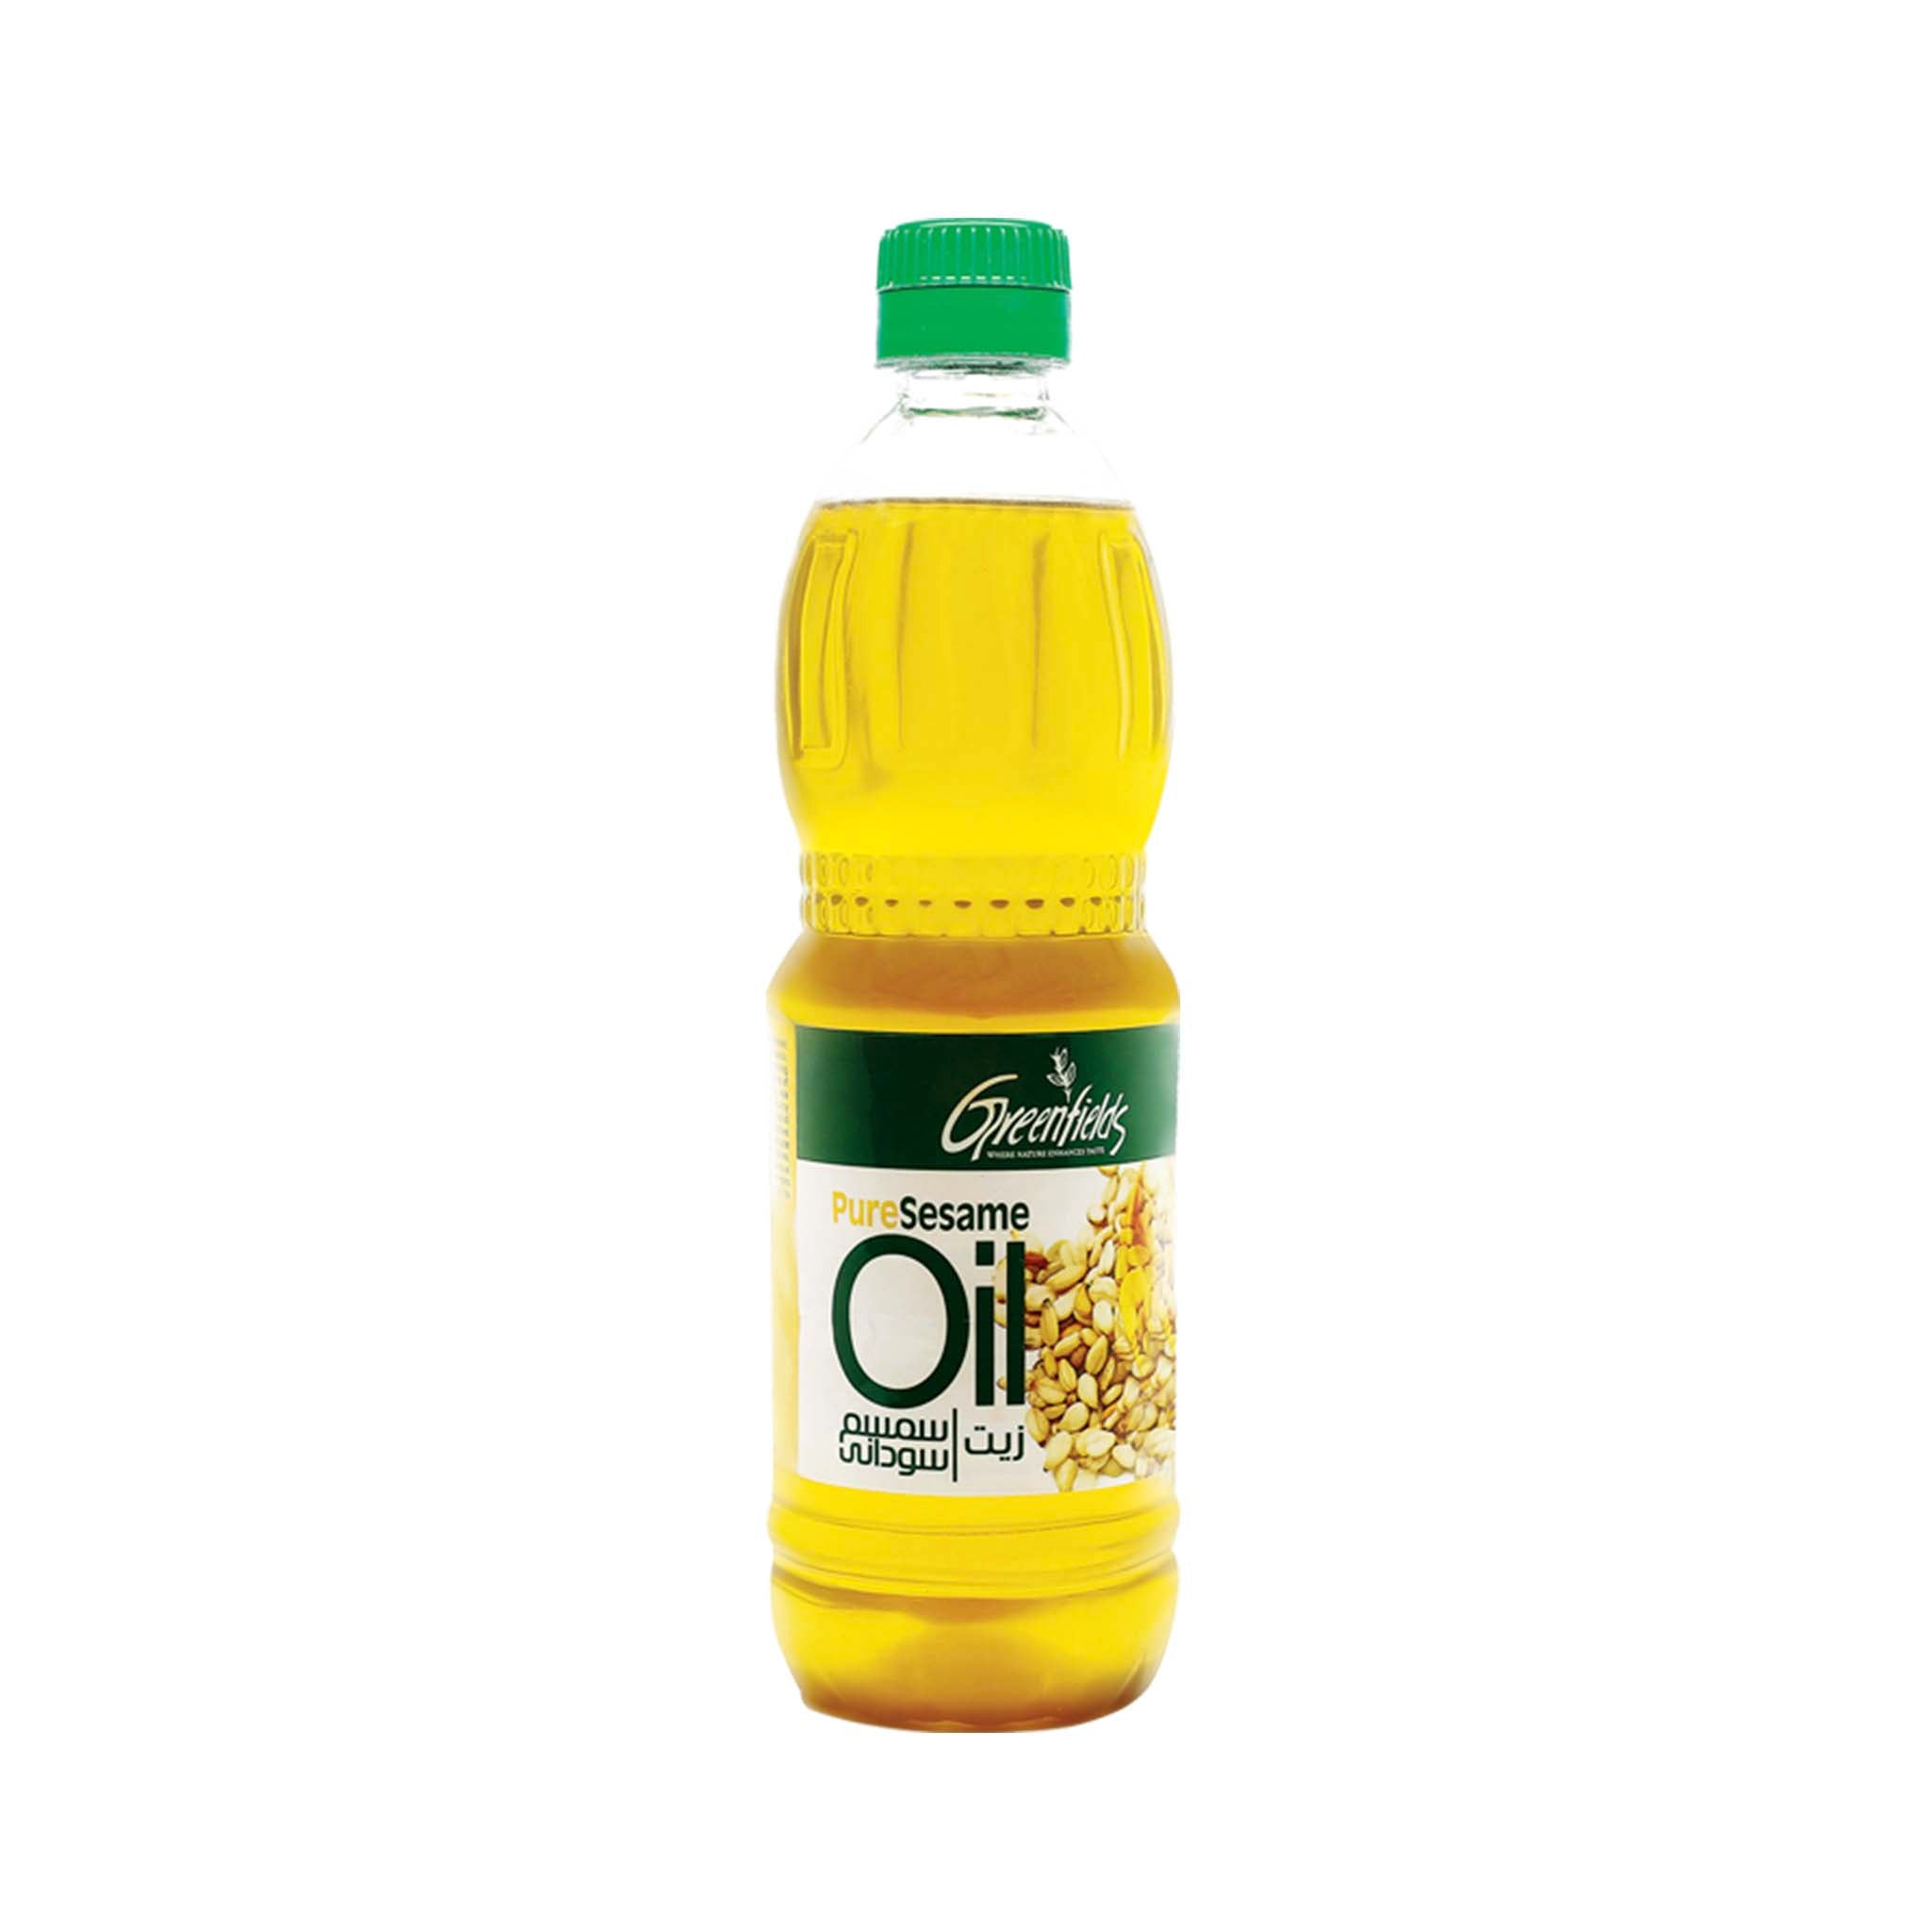 Greenfields Sesame Oil 500g Ingredients Oils & Vinegars